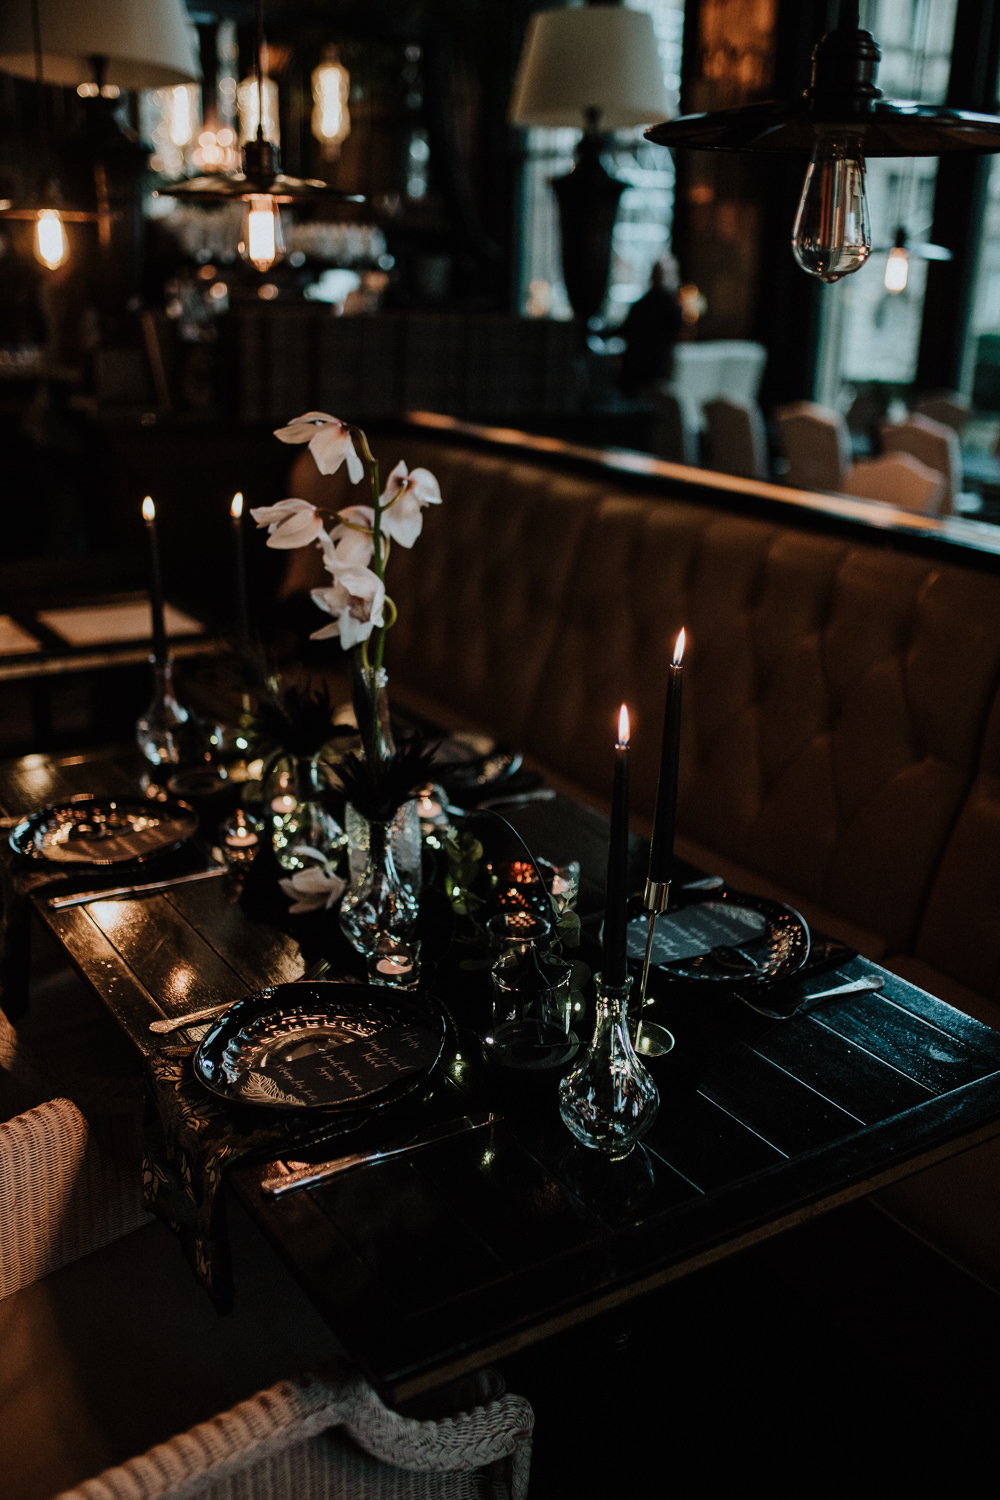 Place Setting Decor Plates Table Tablescape Feathers Candles Black Wedding Ideas Taylar-Jayde Photography